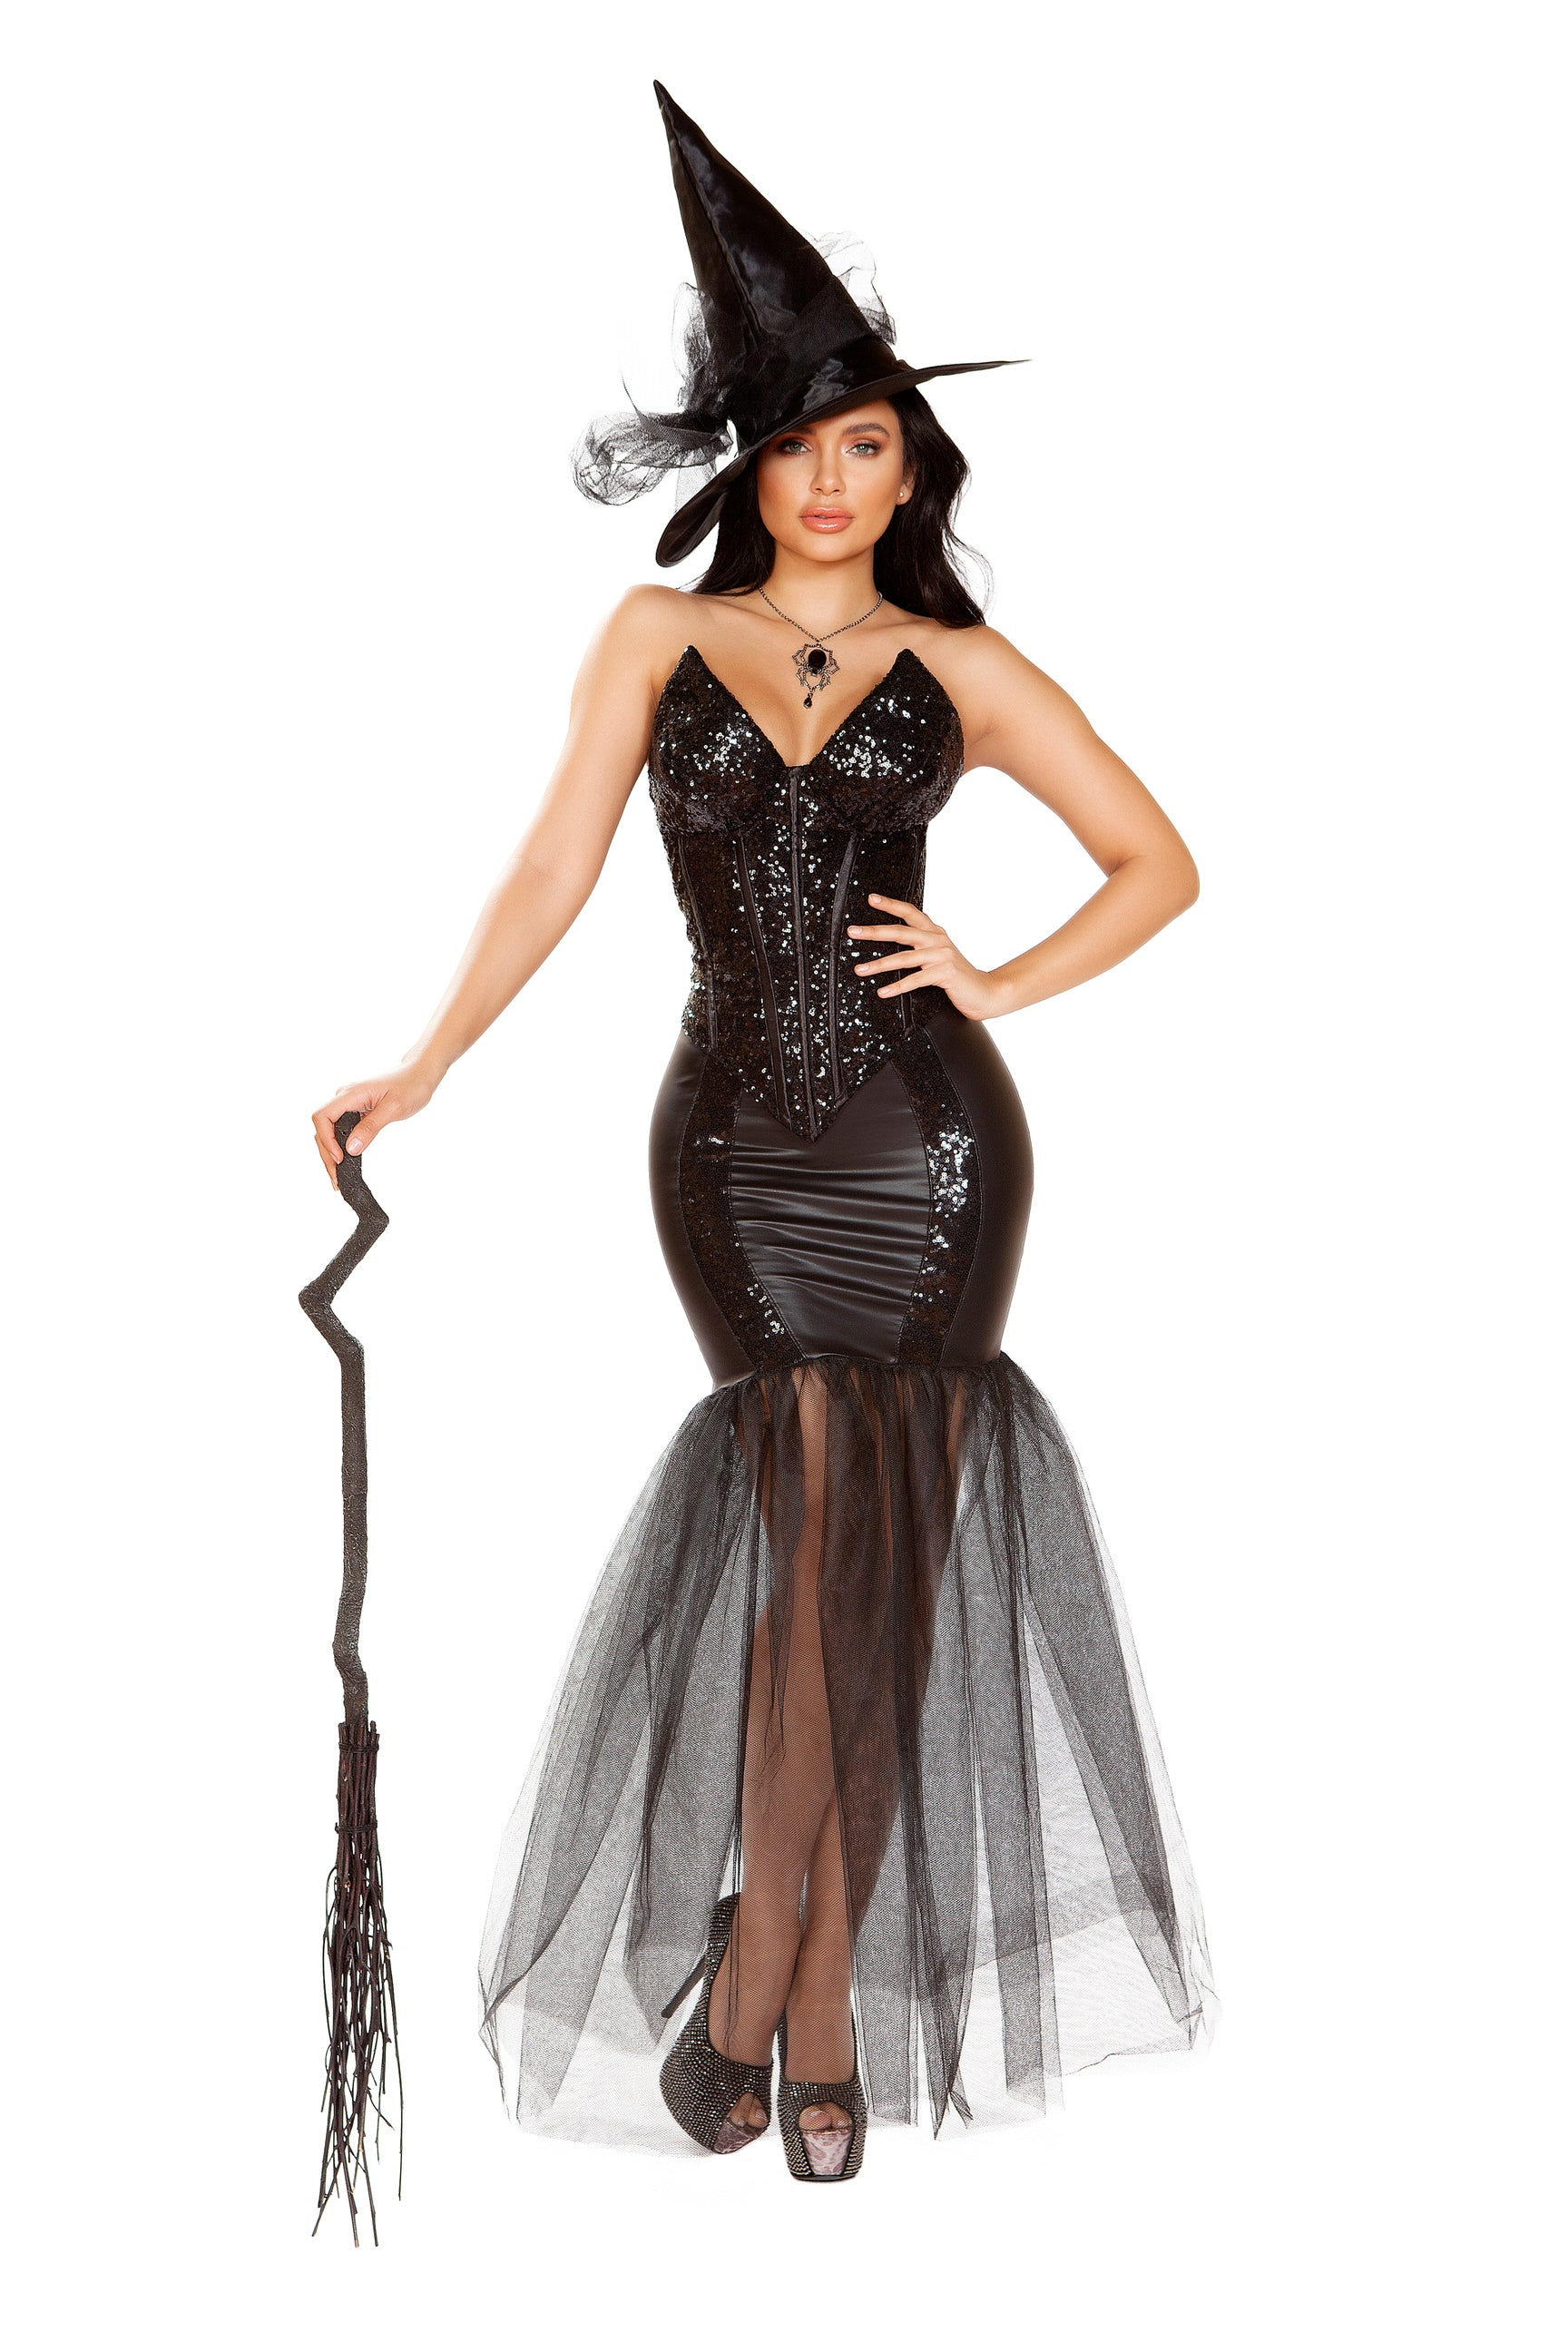 4910 - 3pc Witch with An Evil Spell ${description} | Roma Costume and Roma Confidential wholesale manufacturer of Women Apparel bulk world wide wholesale and world wide drop ship services for Adult Halloween Costumes, Sexy and Elegant Lingerie, Rave Clothing, Club wear, and Christmas Costumes. Costumes, Roma Costume, Inc., Roma Costume, Roma Confidential, Wholesale clothing, drop ship, drop ship service, Wholesale Lingerie, Wholesale Adult Halloween Costumes, Rave Clothing, EDM Clothing, Festival Wear, Christmas Costumes, Clubwear, Club wear.